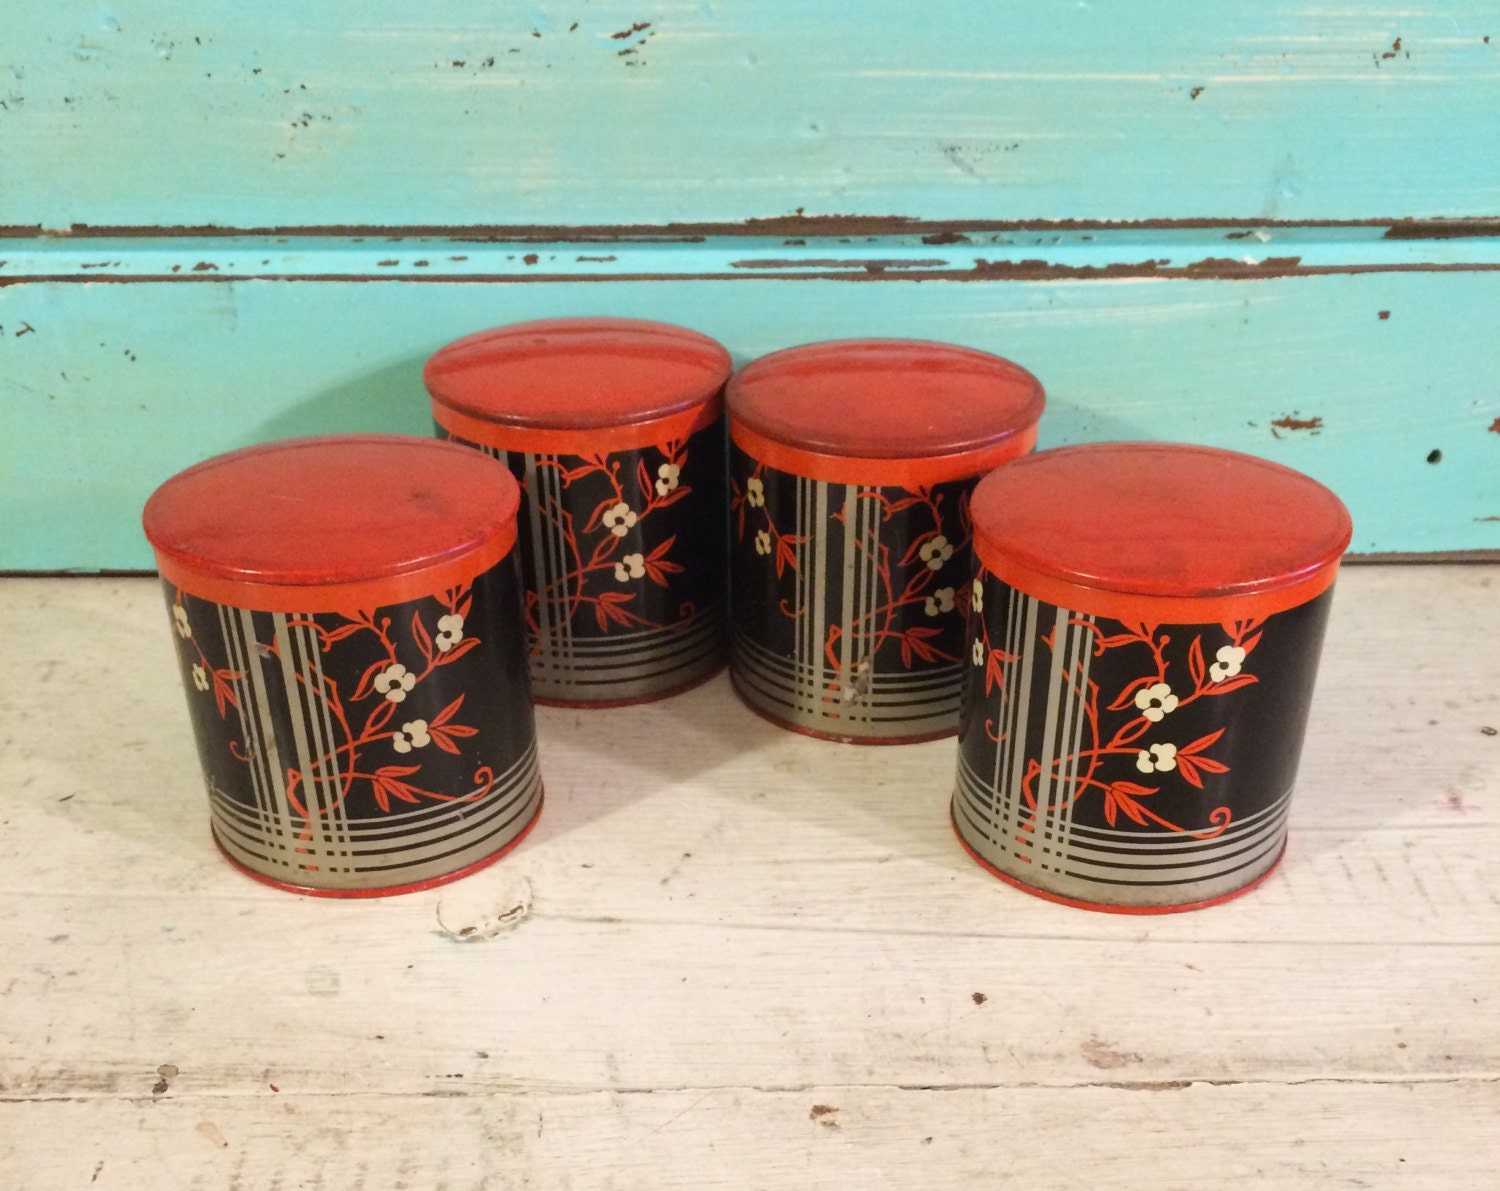 1930s vintage kitchen vintage spice tins set of 4 by for Retro kitchen set of 6 spice tins